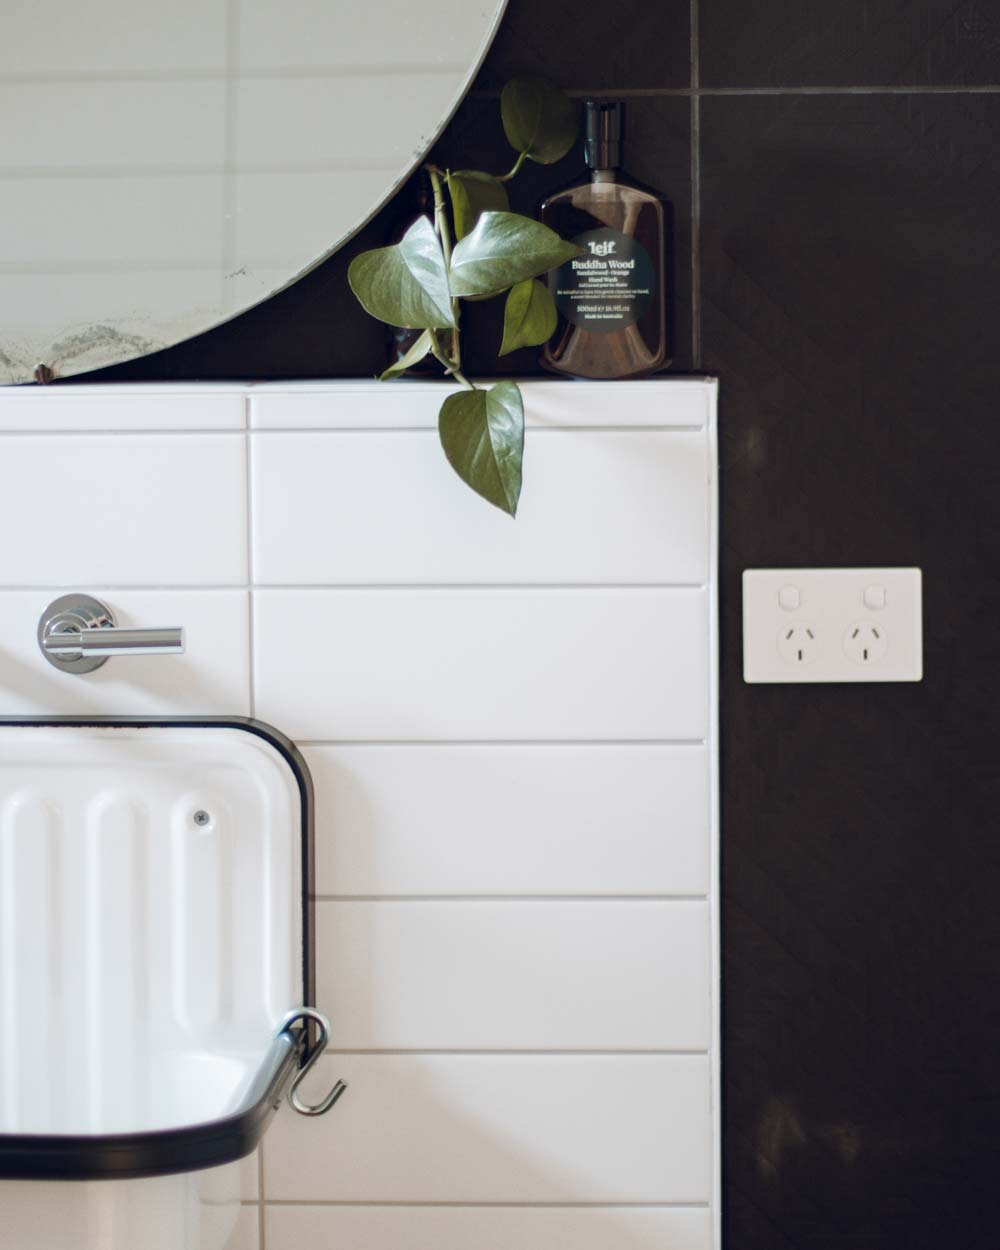 Bathroom details in the Slow Drift